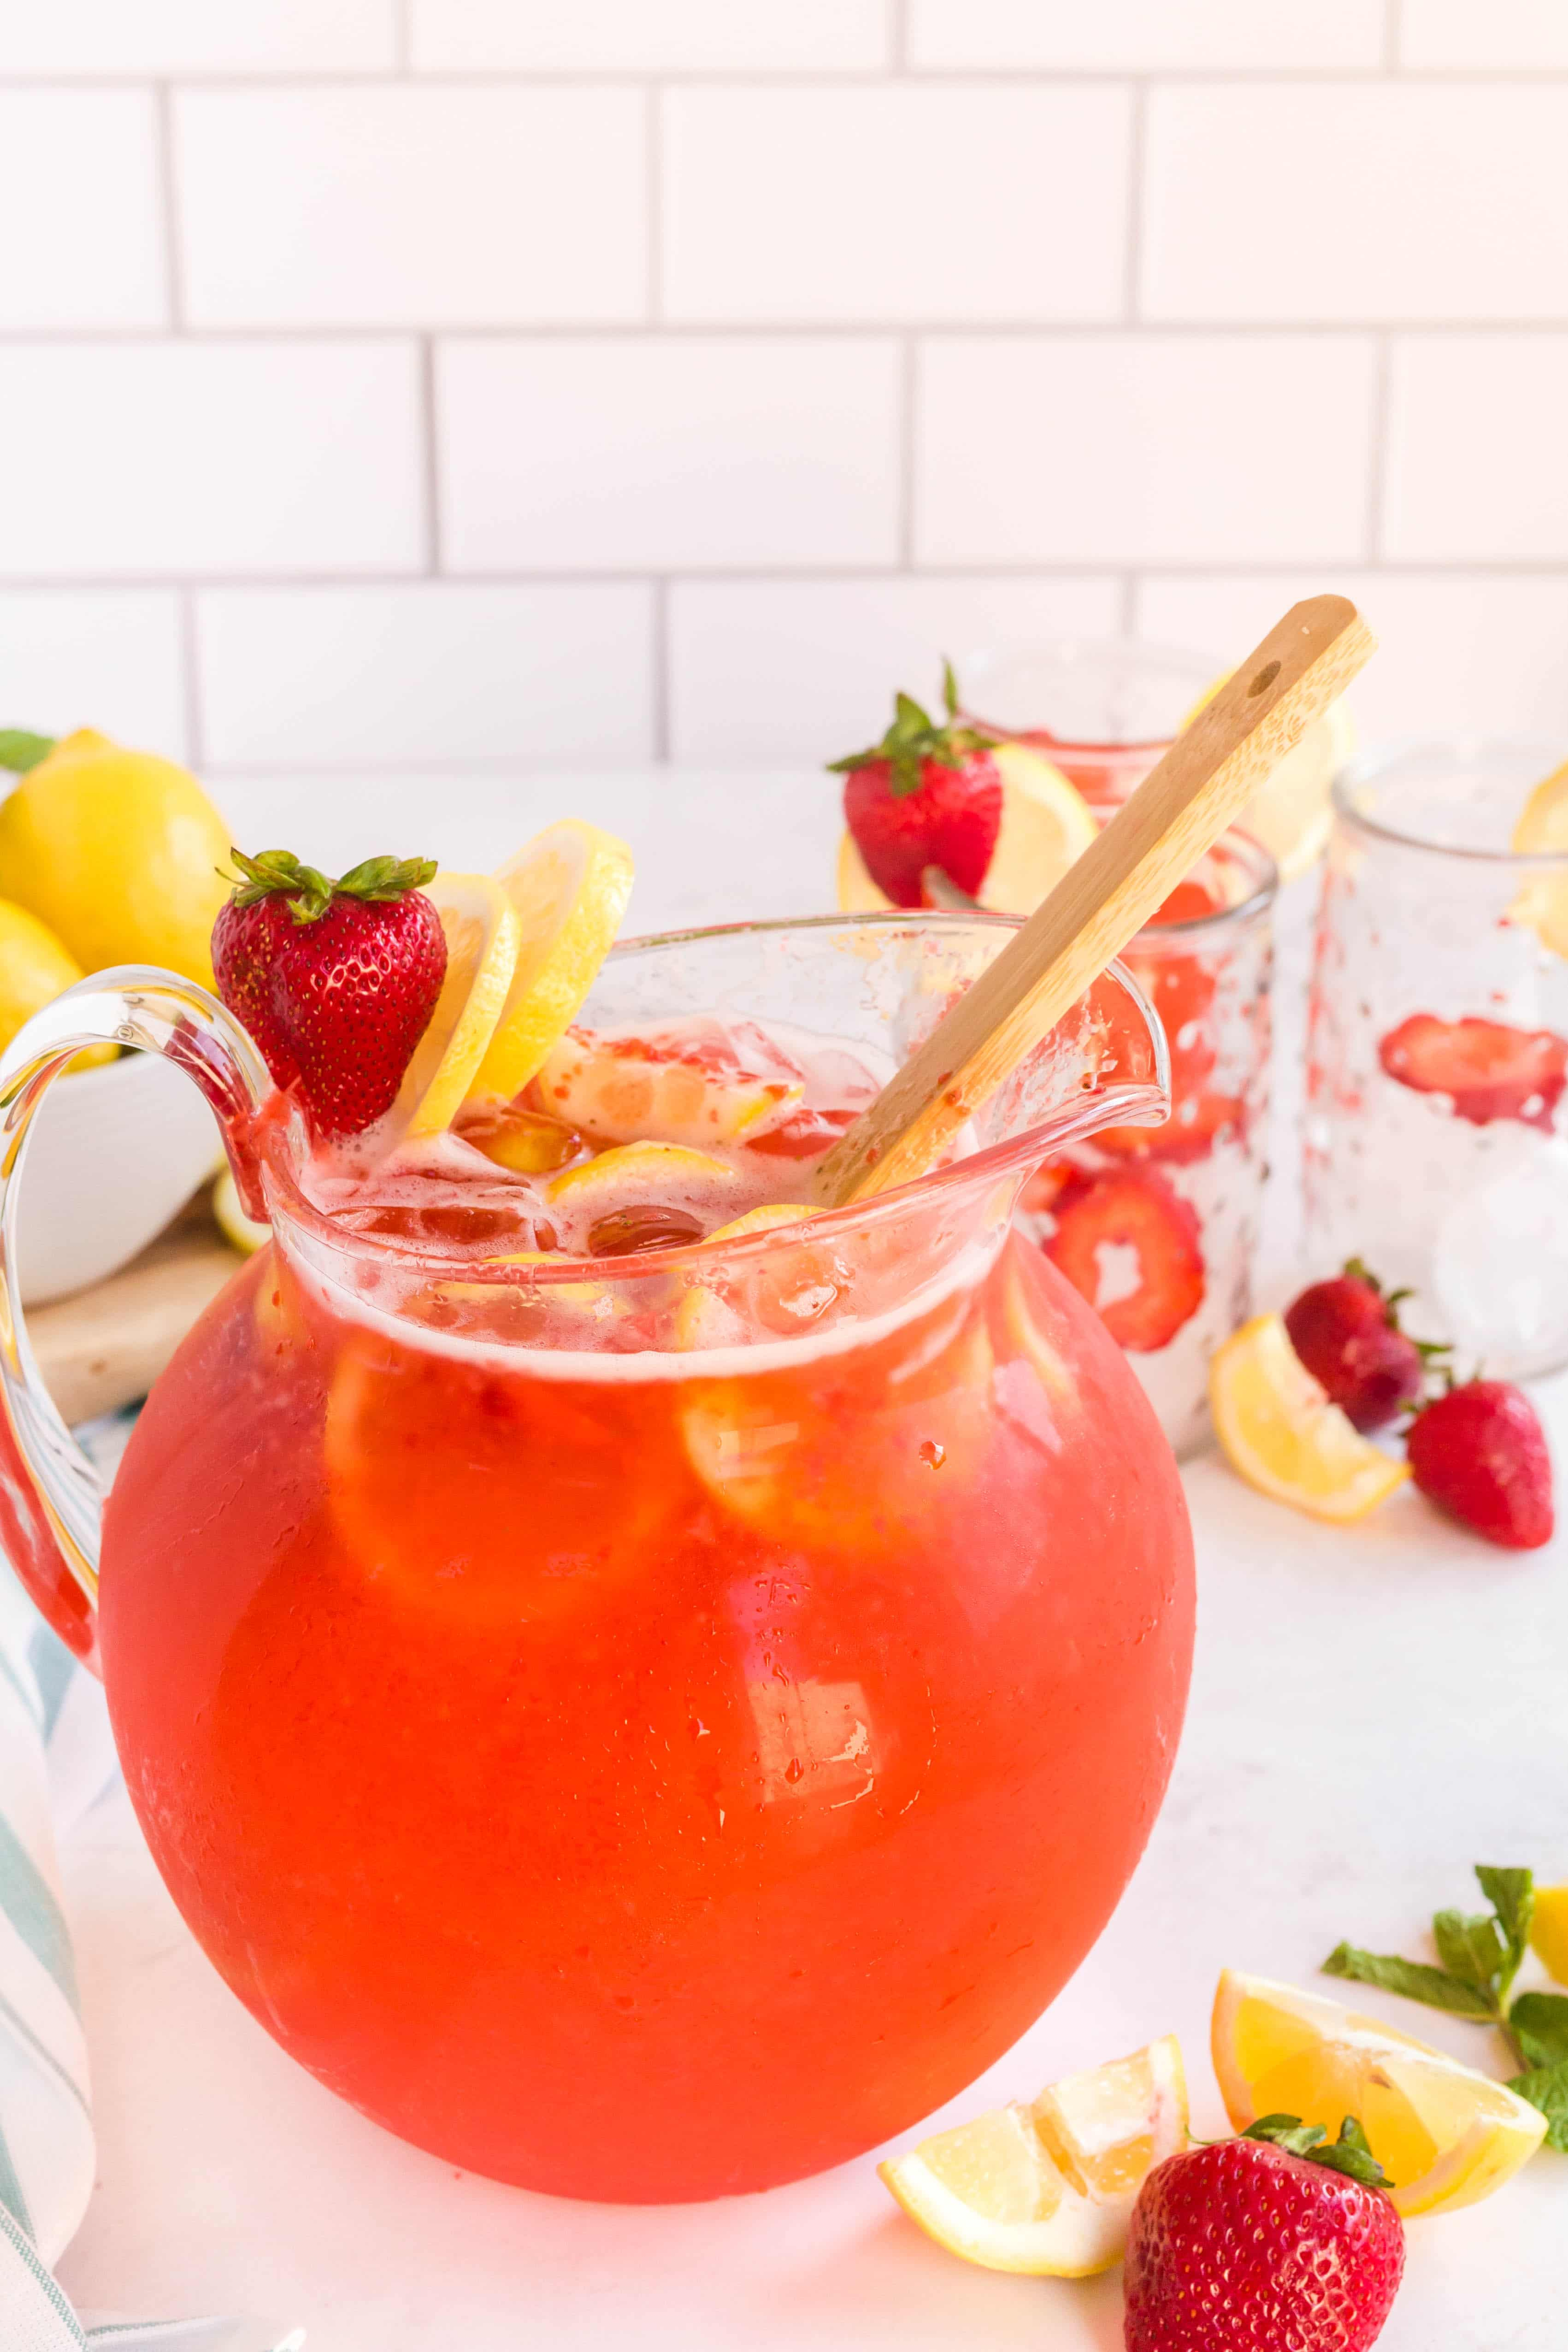 homemade strawberry lemonade in pitcher with garnishes